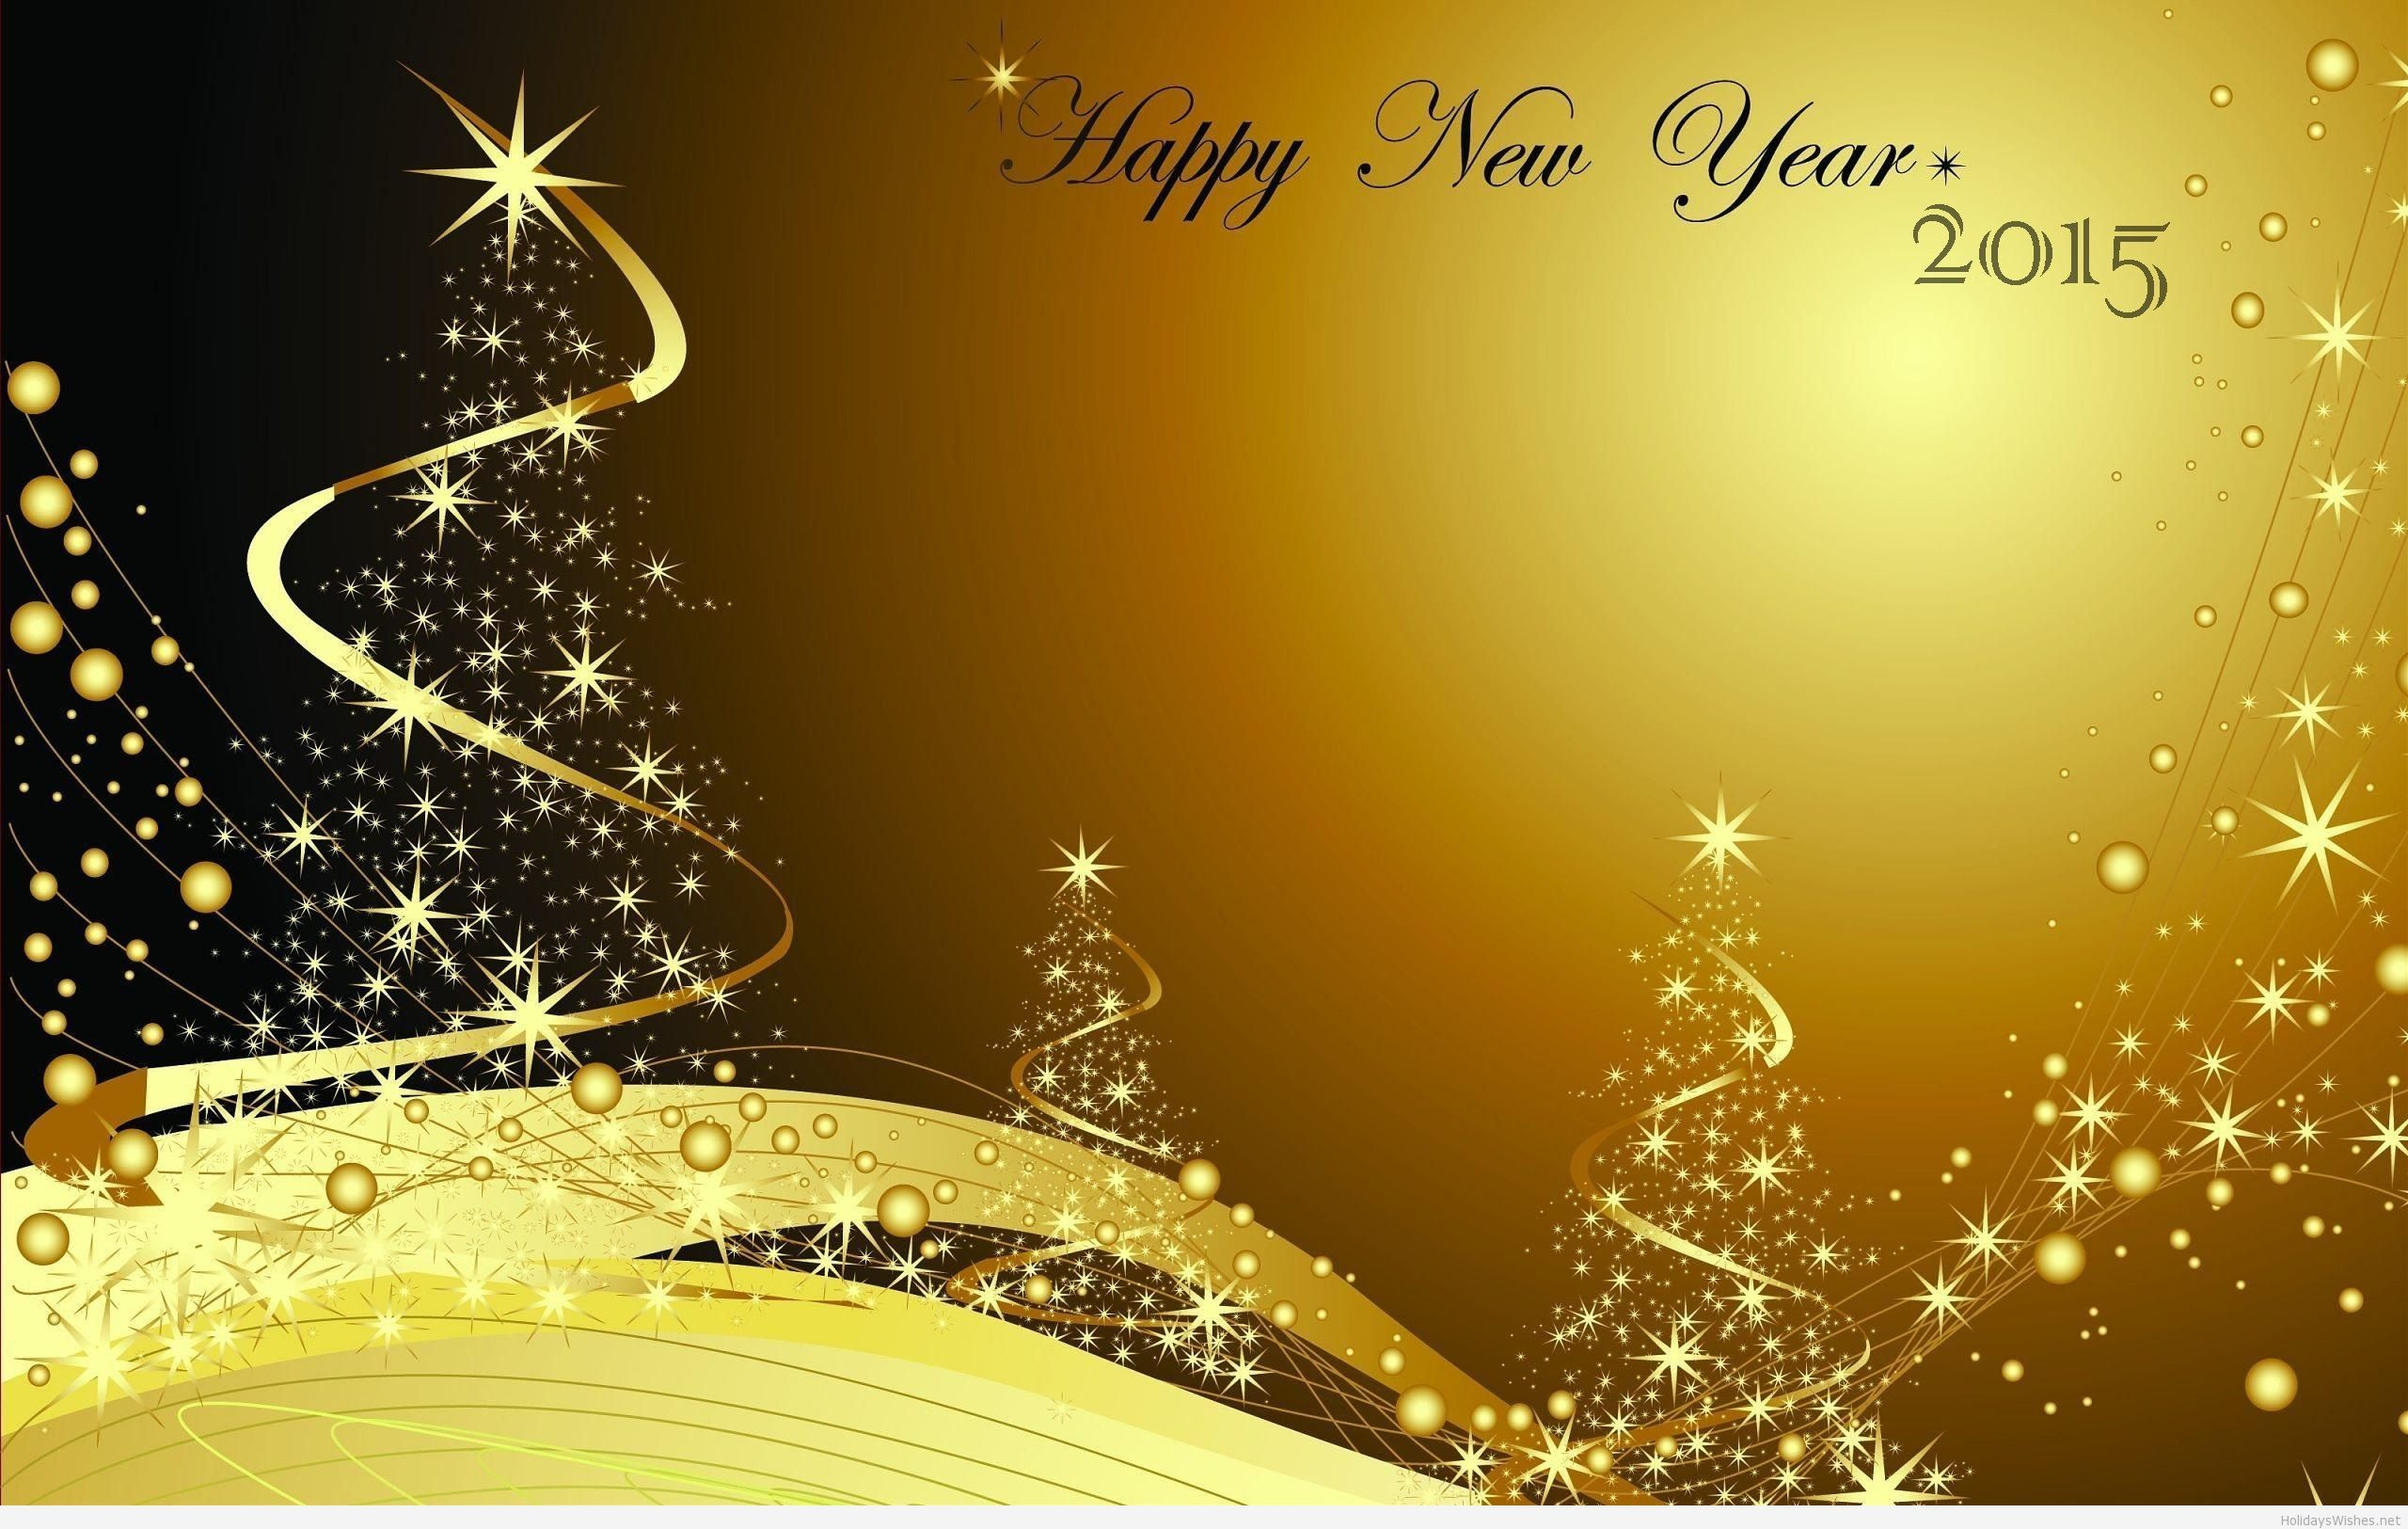 background new year wishes